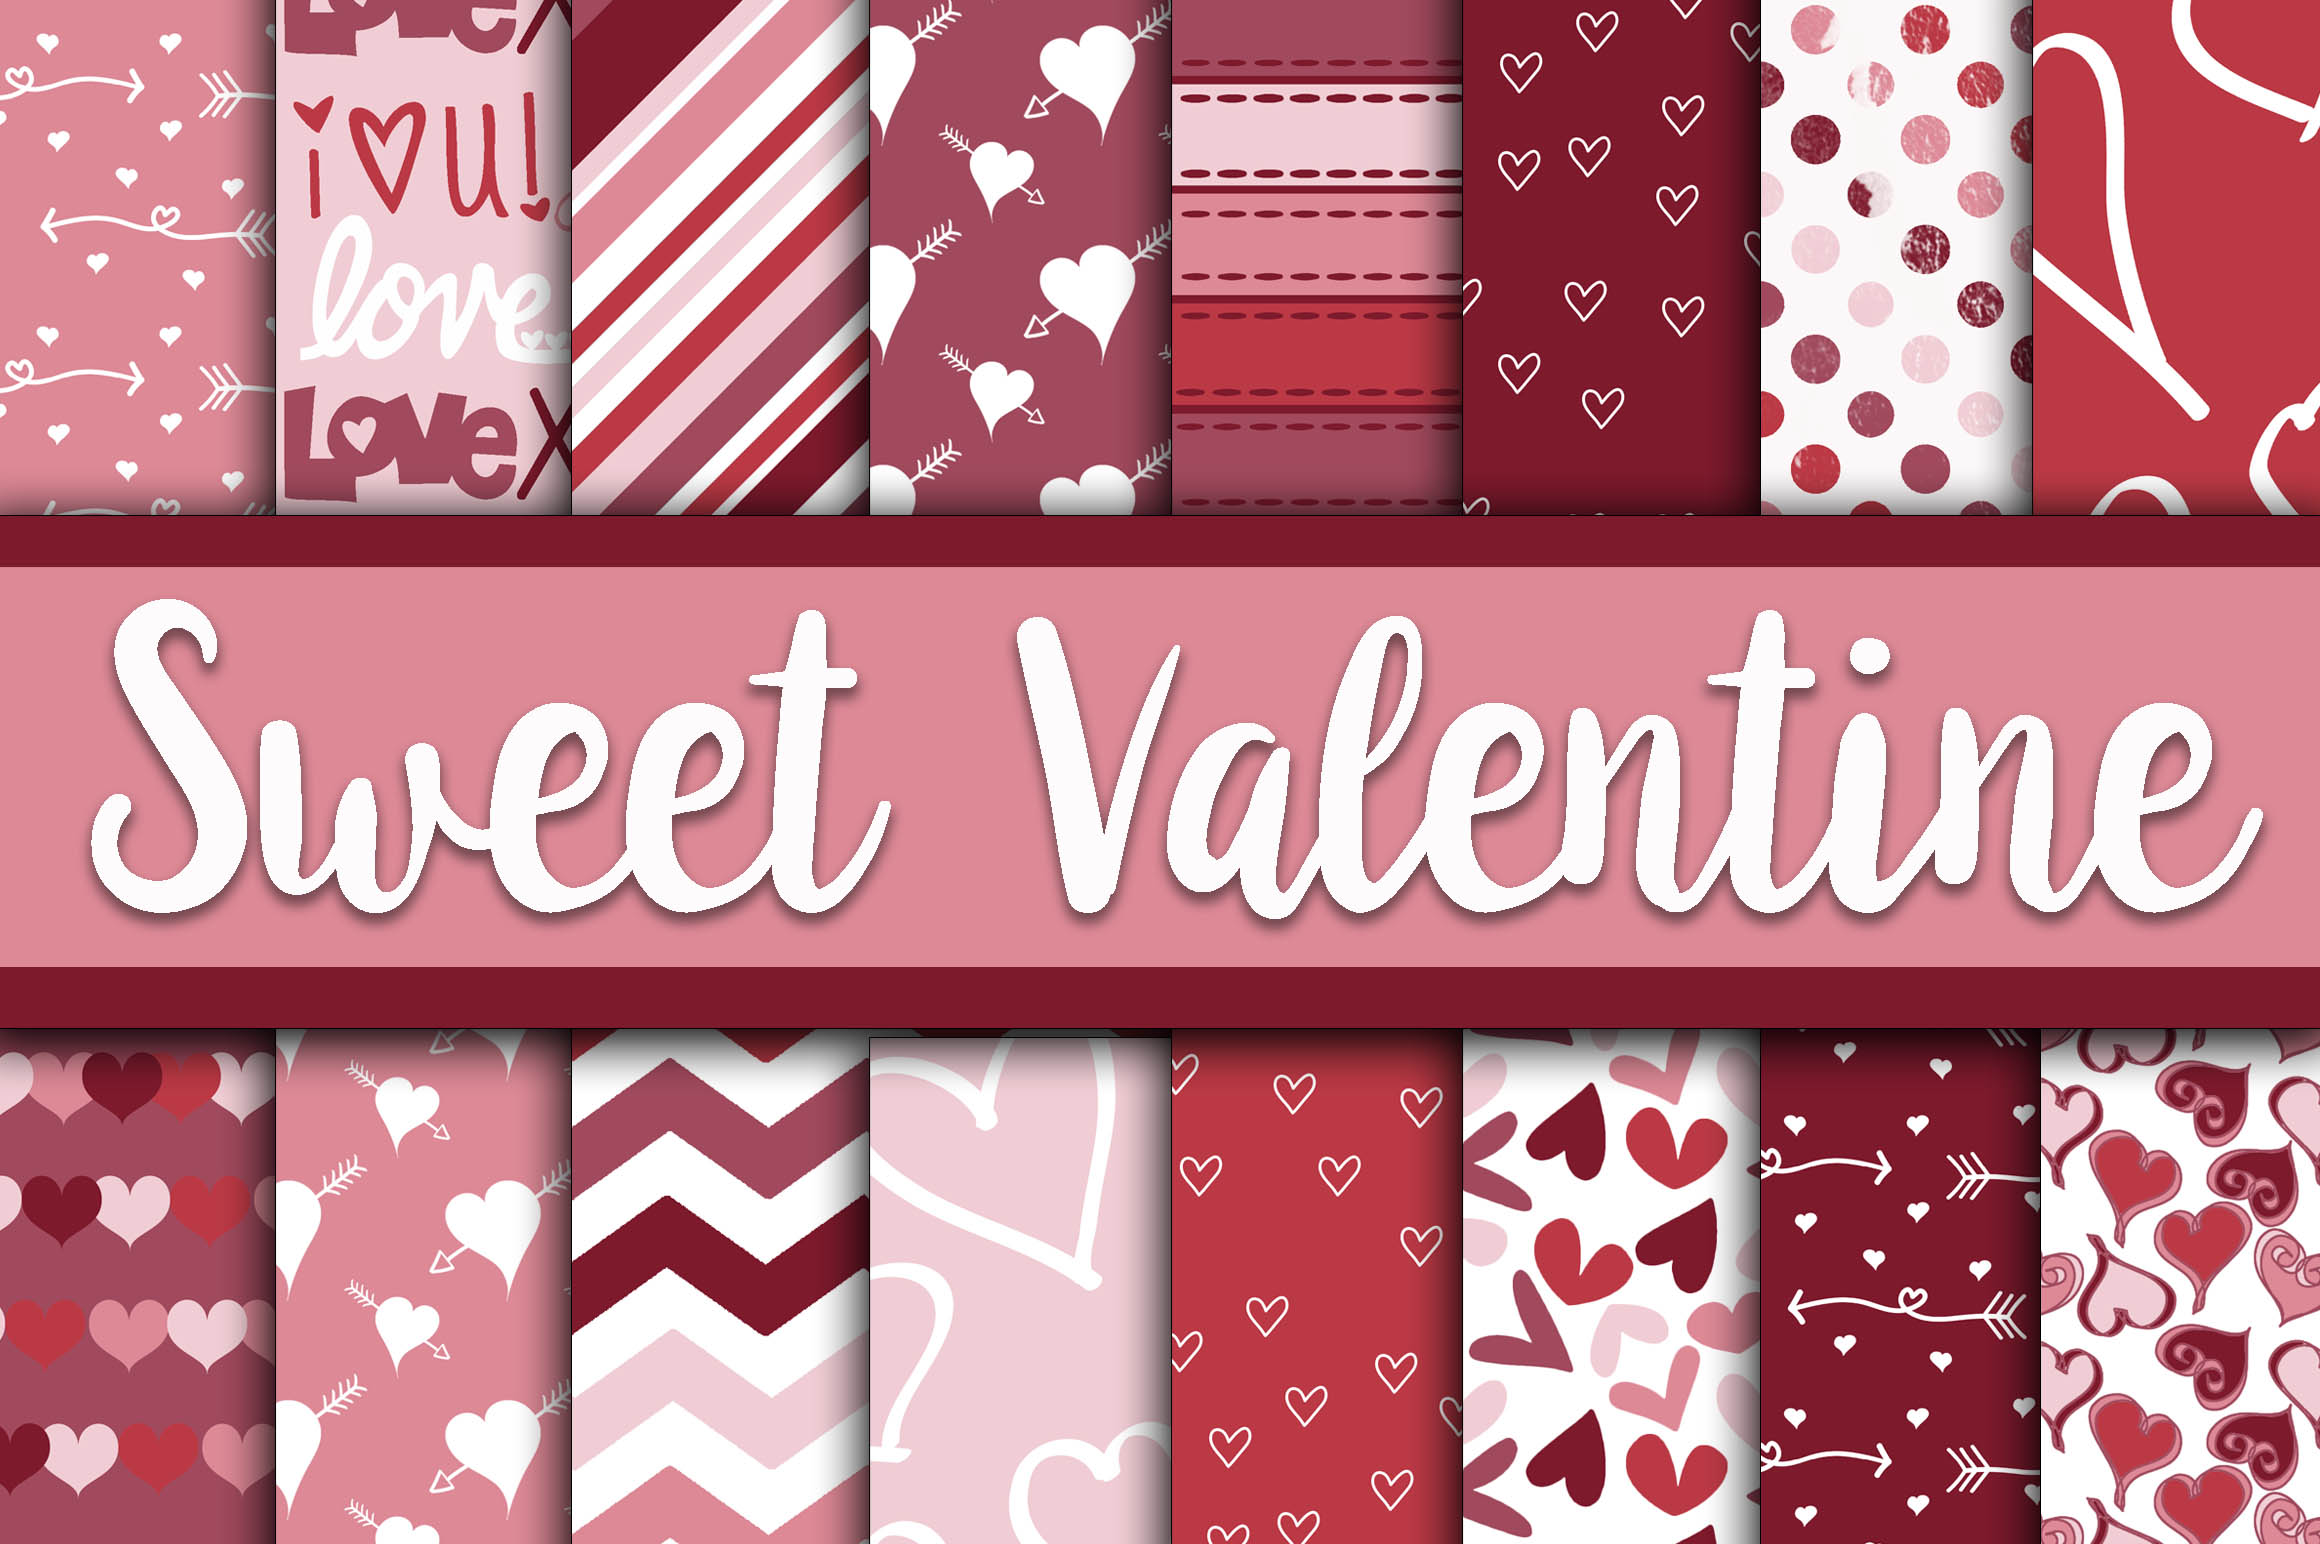 Sweet Valentine Digital Paper Graphic Backgrounds By oldmarketdesigns